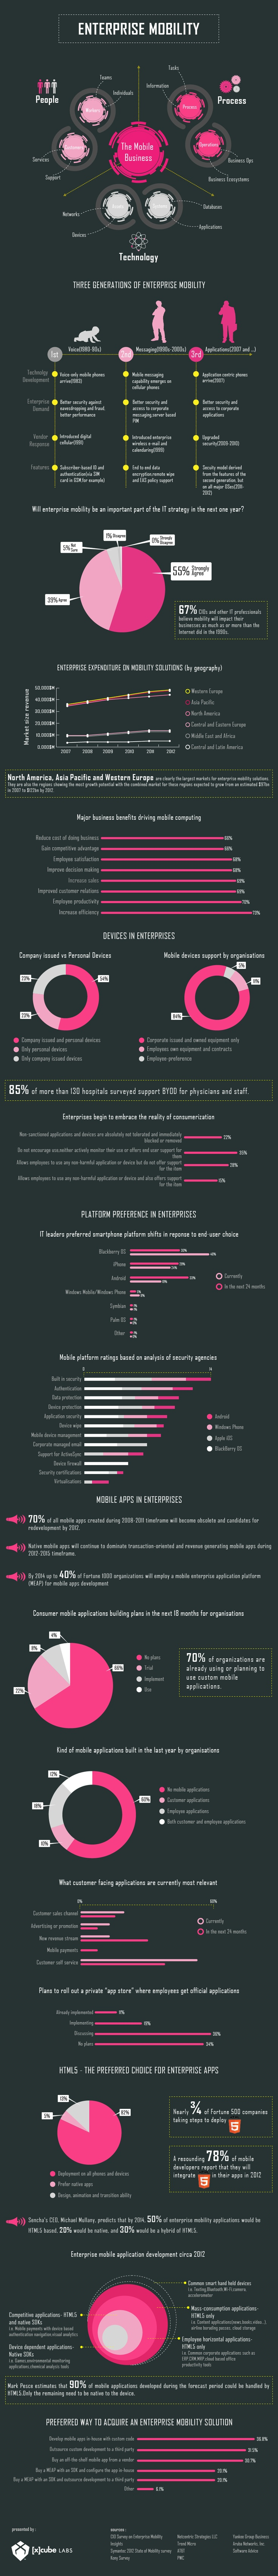 An epic Infographic by [x]cube LABS on Enterprise Mobility